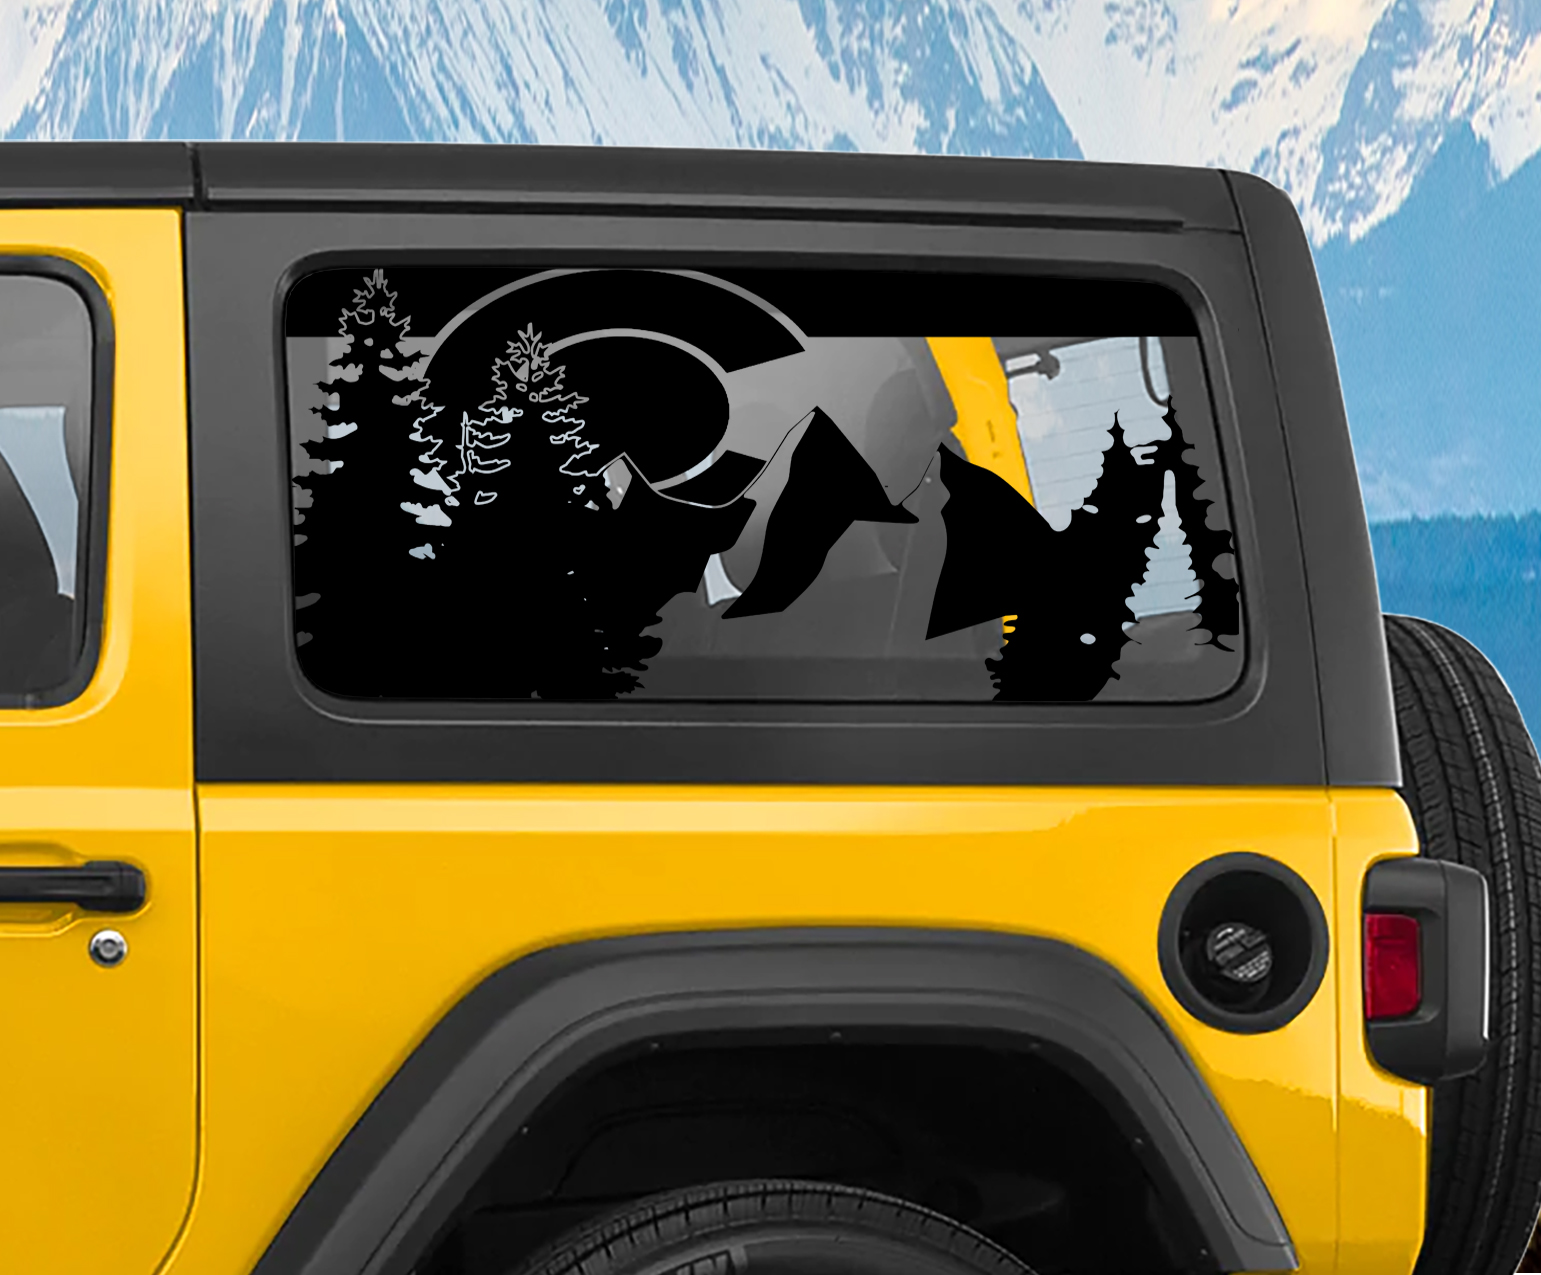 State of Colorado Flag Design Window Wrangler Jk & JL Hardtop Set Vinyl Decal | 2007-2019+